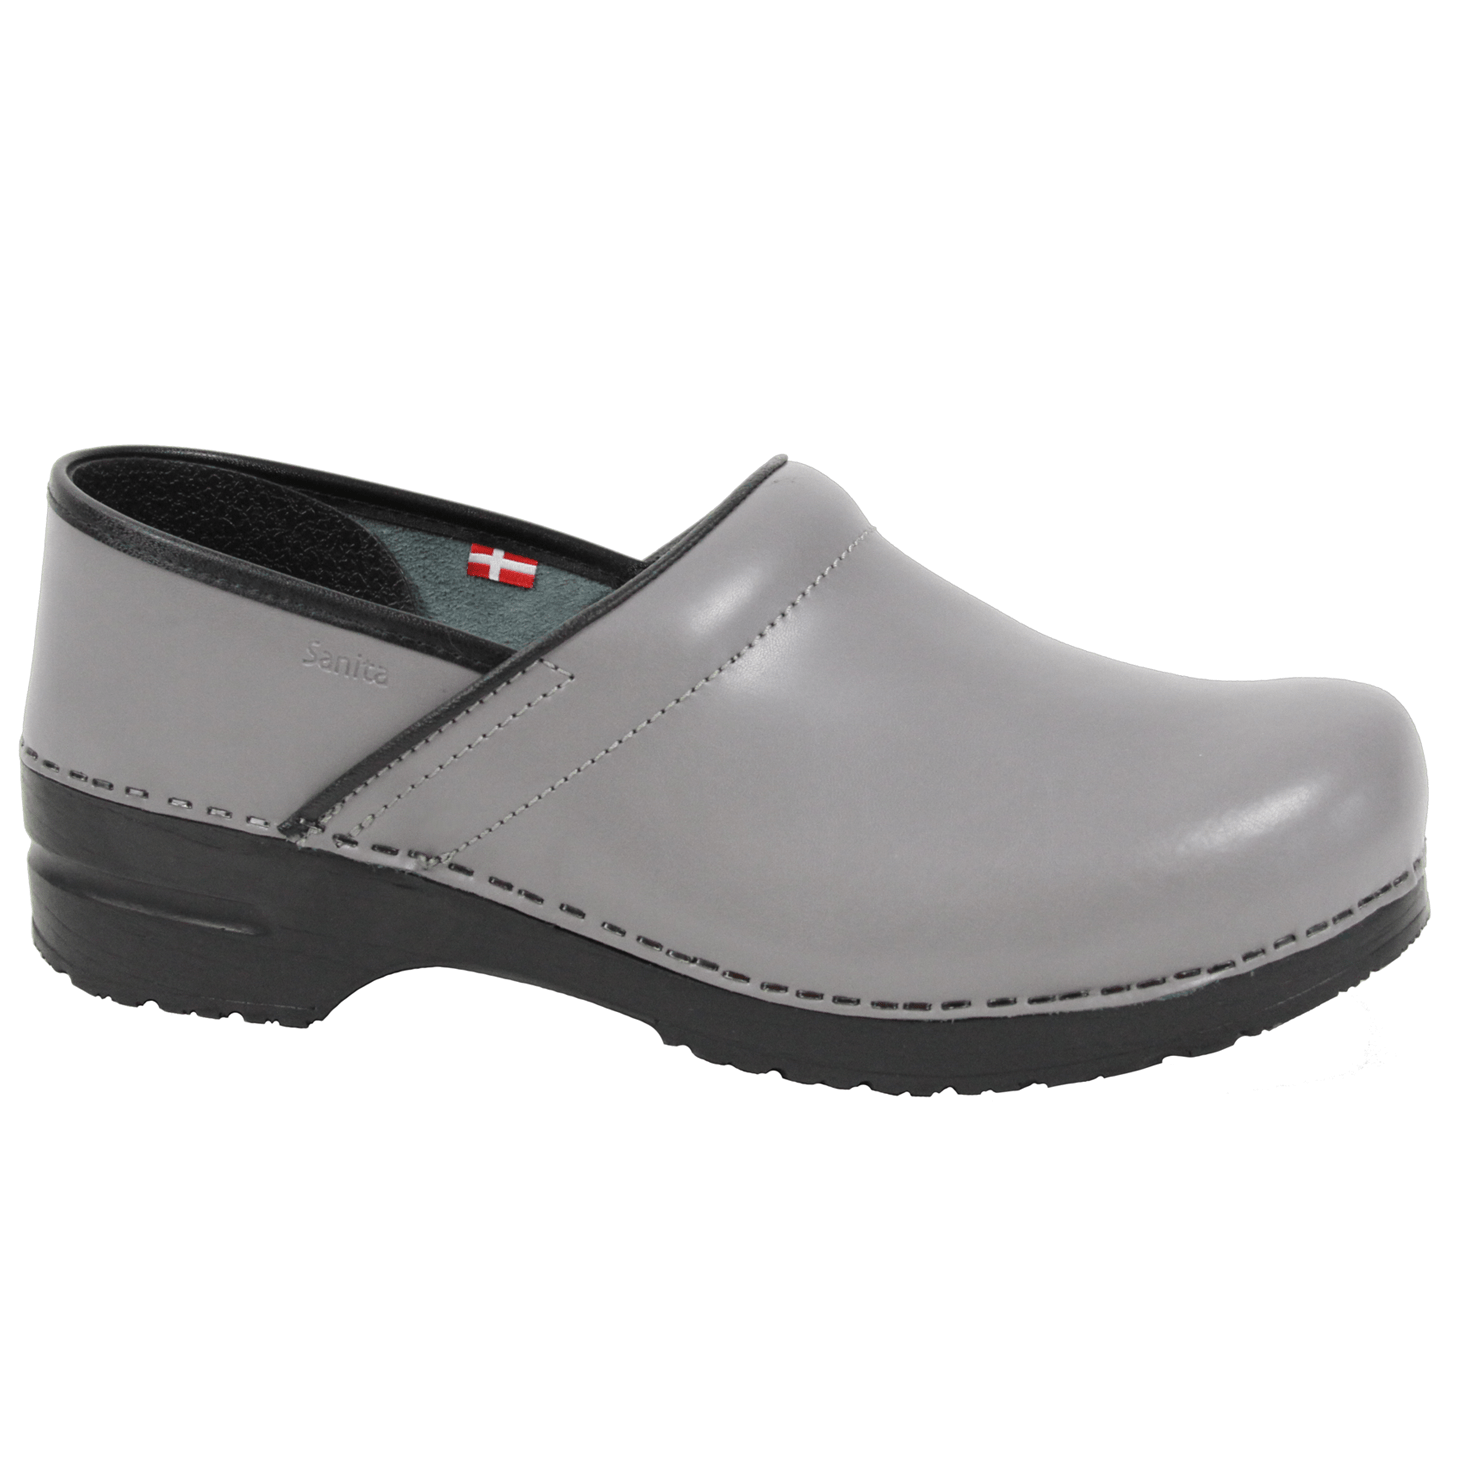 Sanita Pro. PU Men's in Grey Closed Back Clog